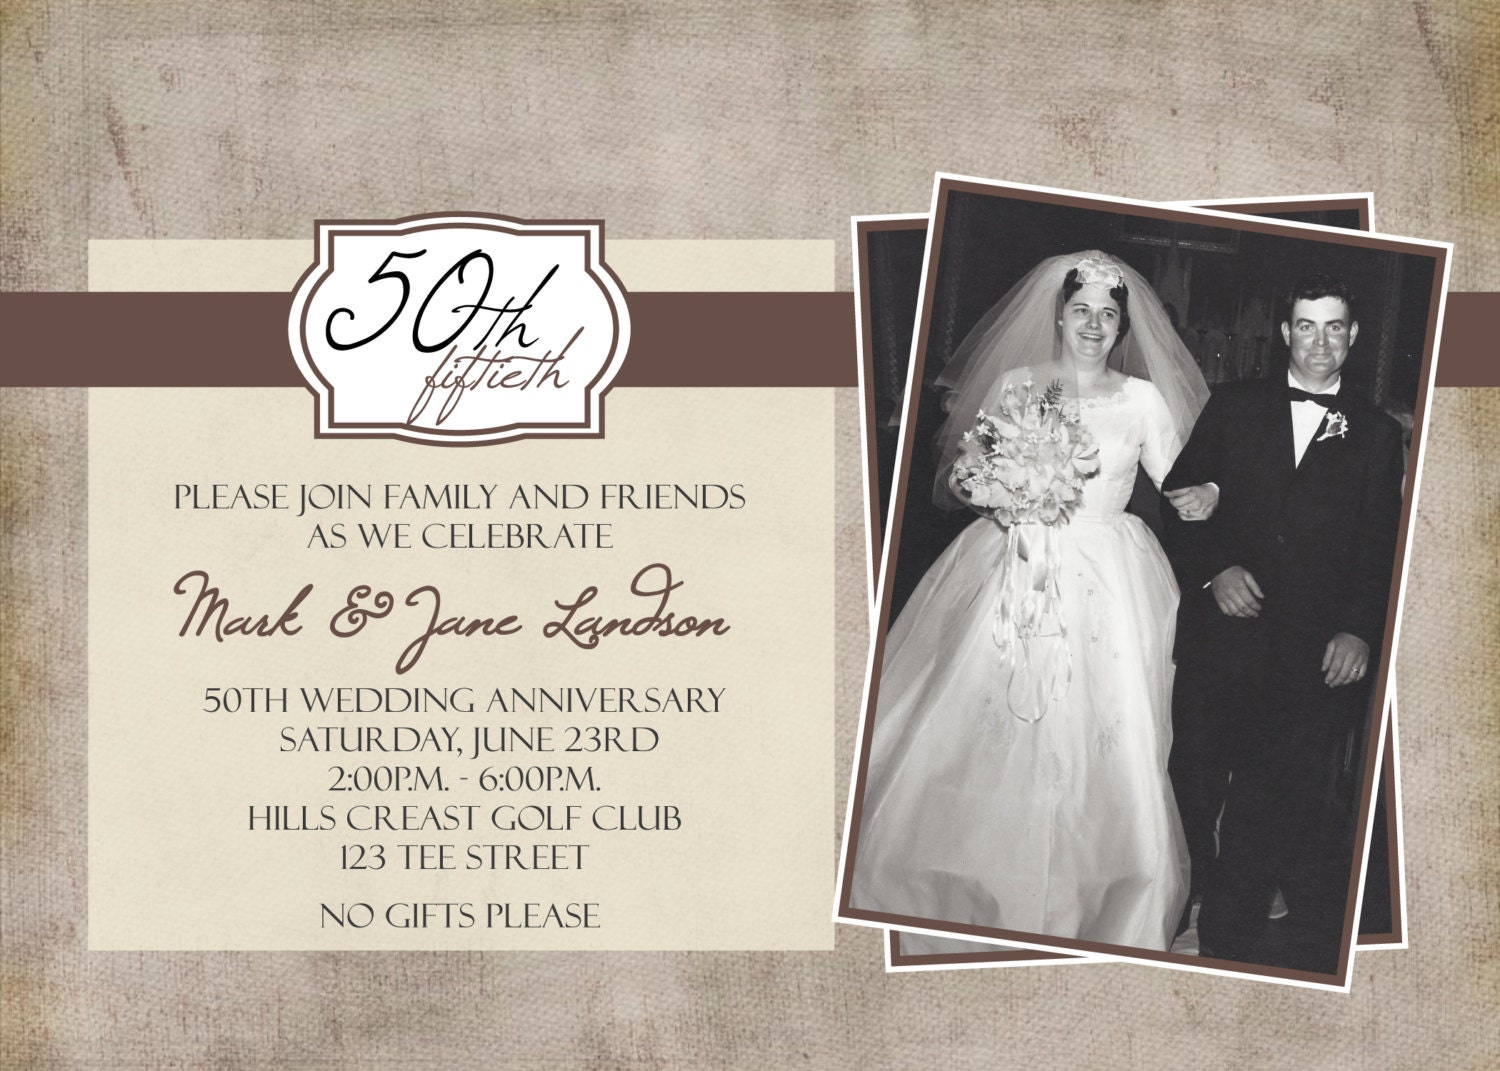 50th Wedding Invitation Templates: 50th Anniversary Photo Party Printable Invitation